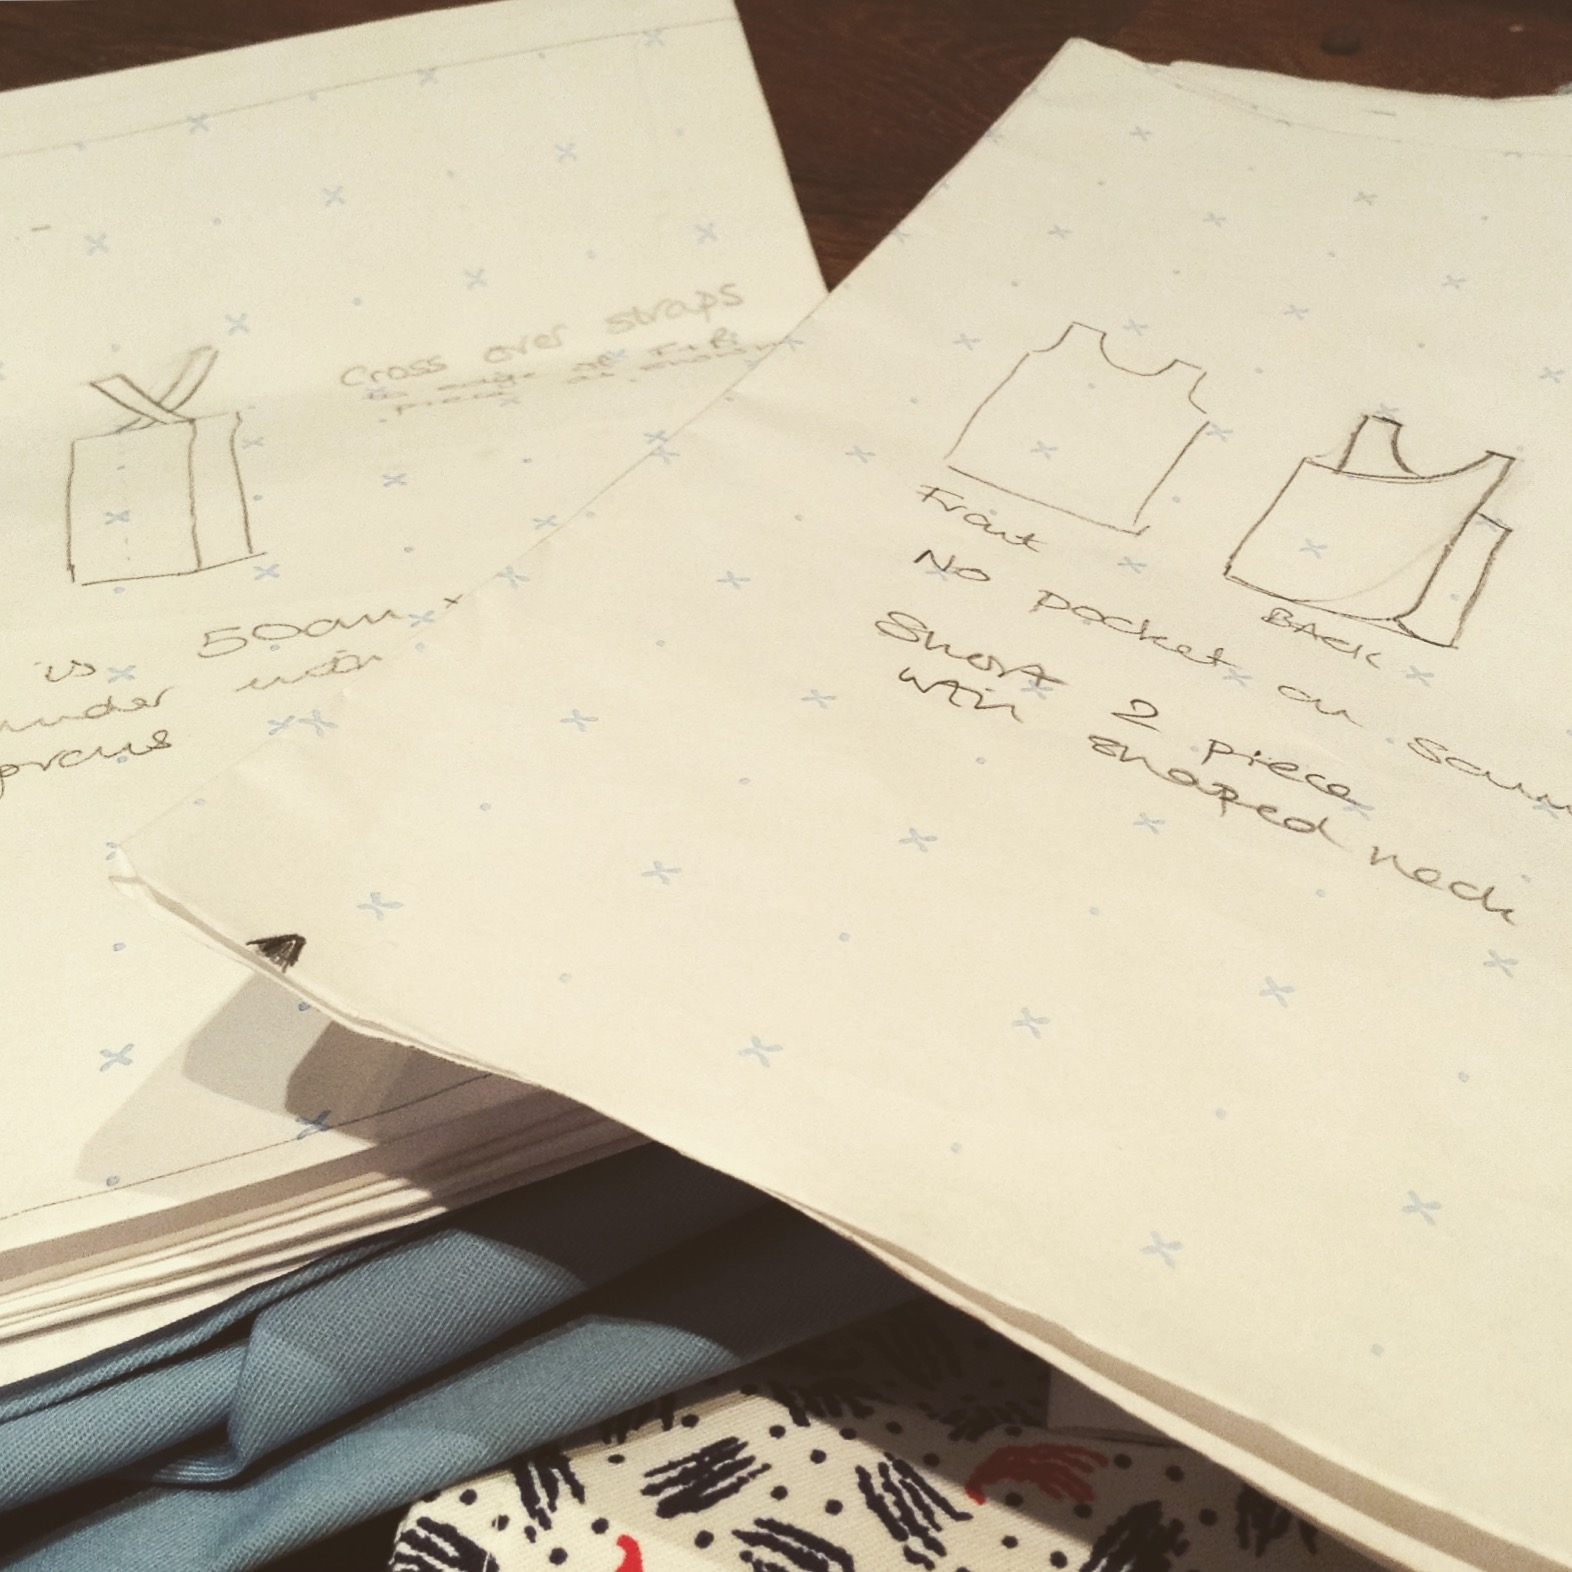 Aprons in development at The Stitch Society